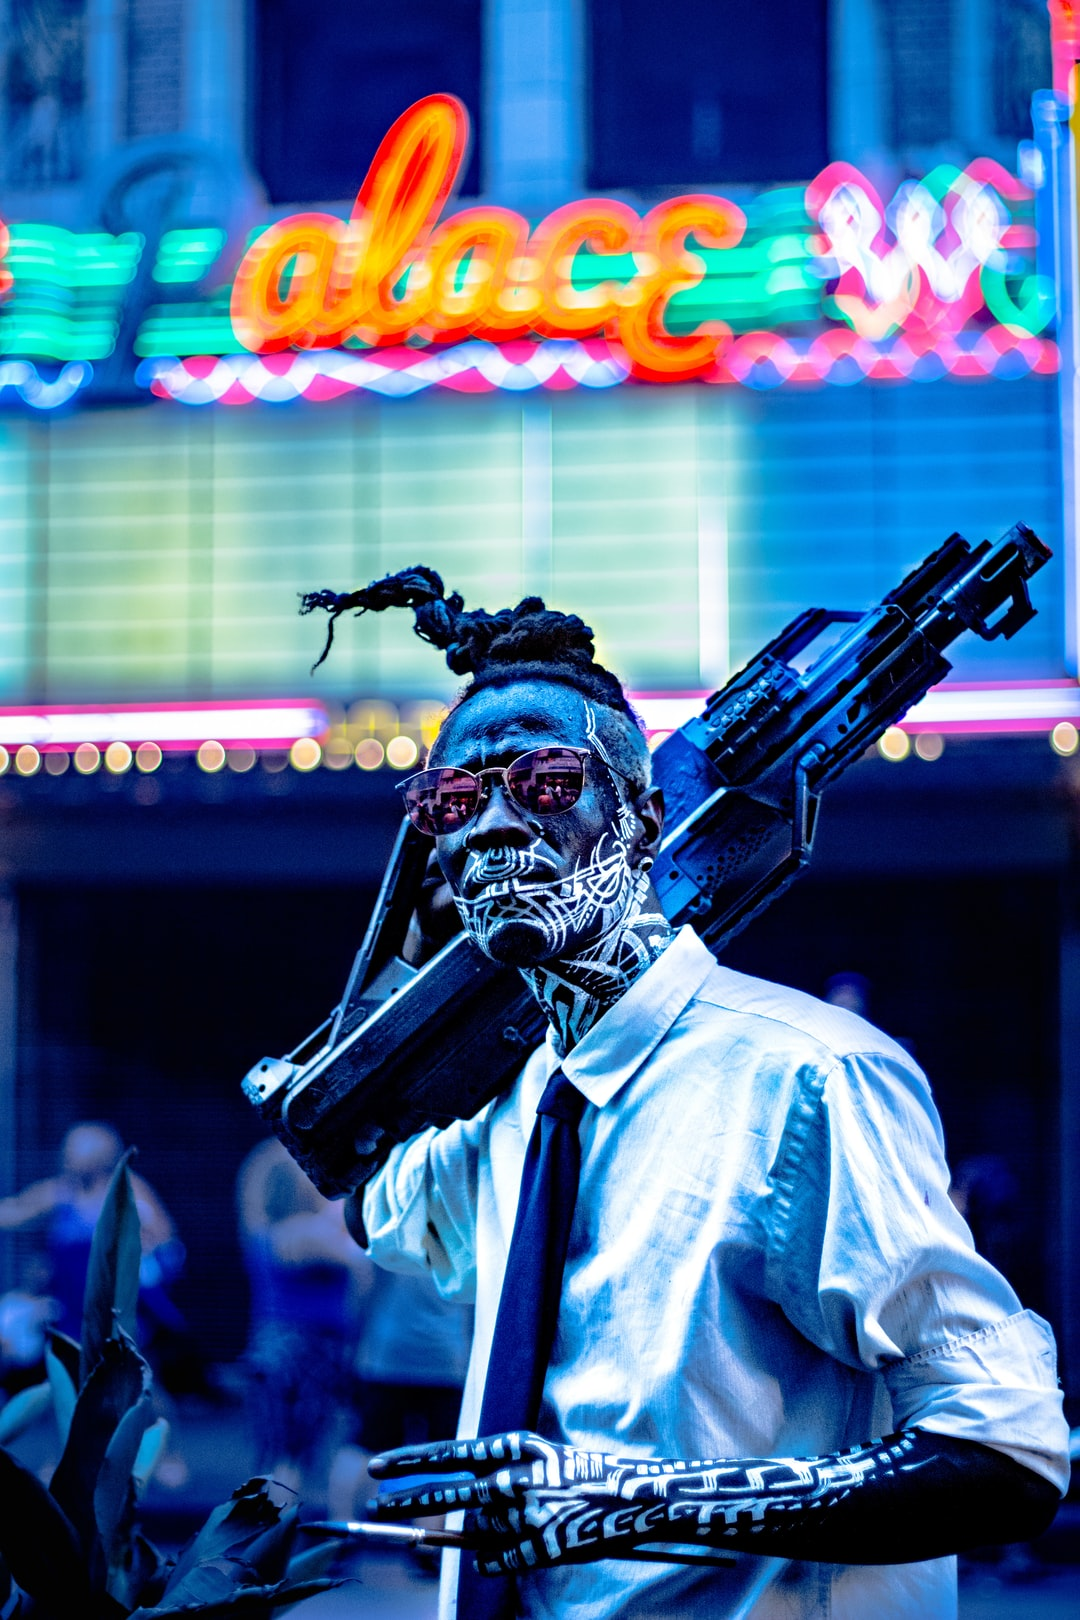 A dark-skinned man with intricate white tattoos, standing in front of a neon storefront with a futuristic gun resting nonchalantly over his shoulder.